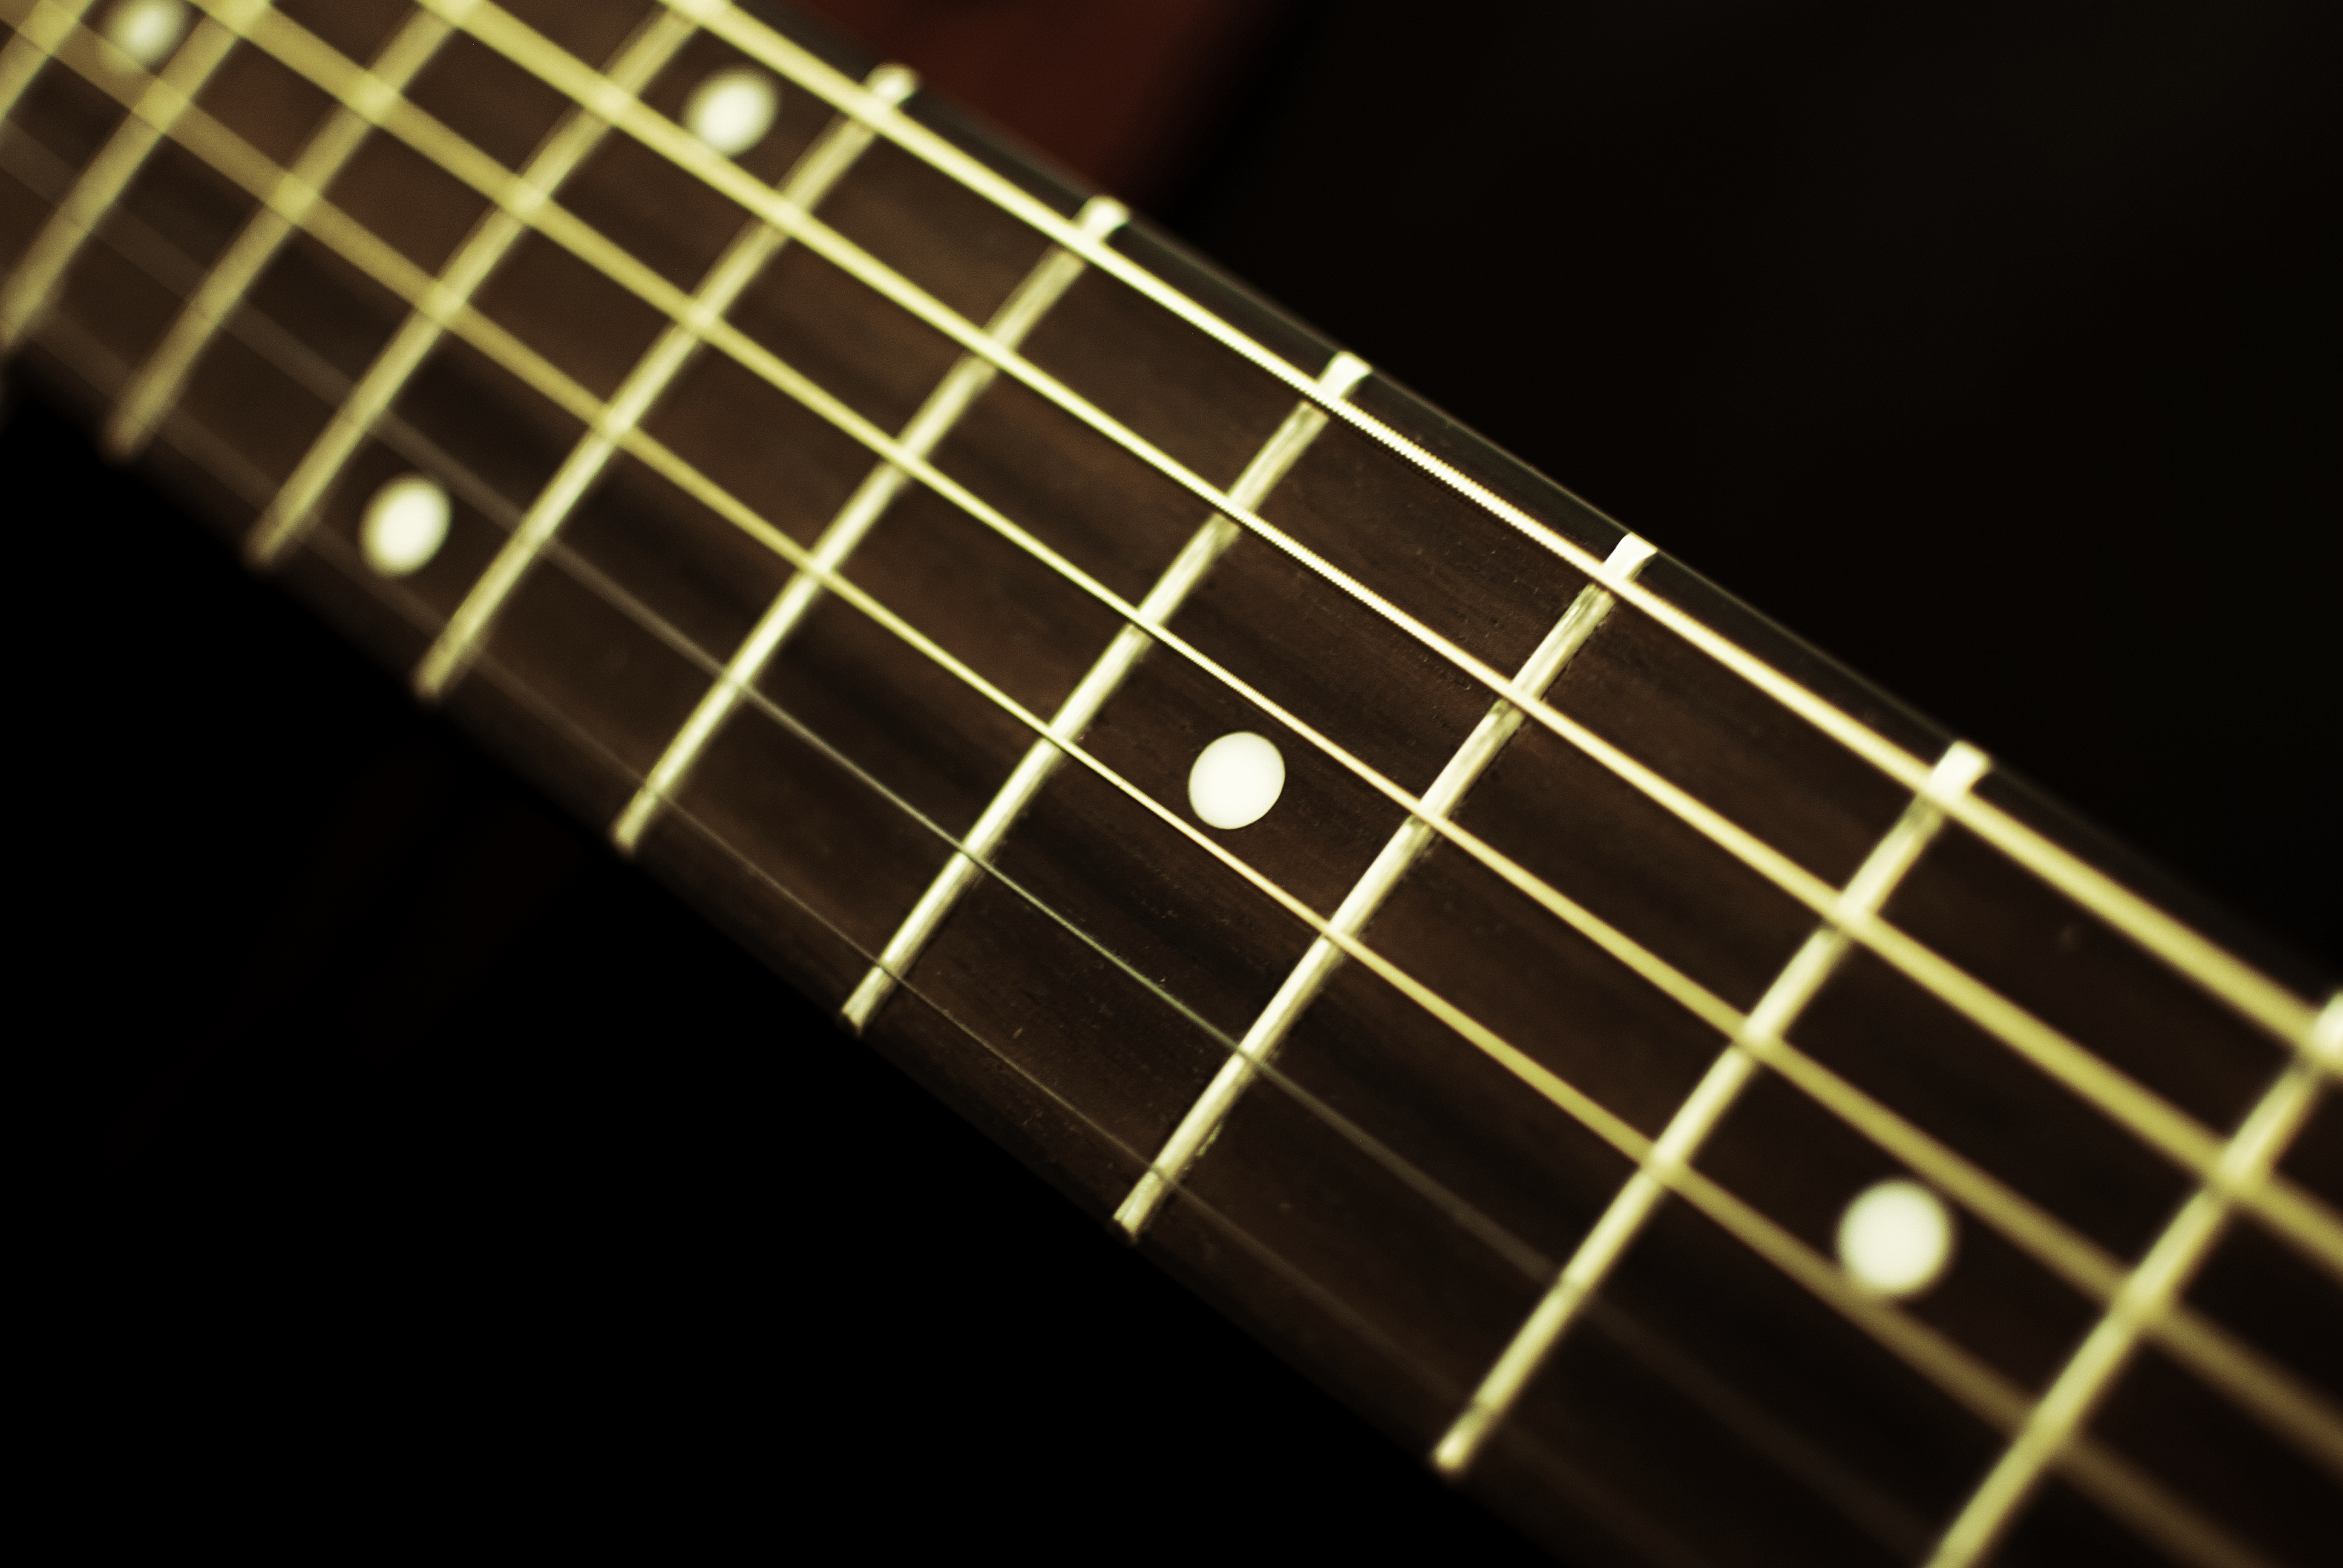 My Guitar and Piano – Close up | My Camera Journal